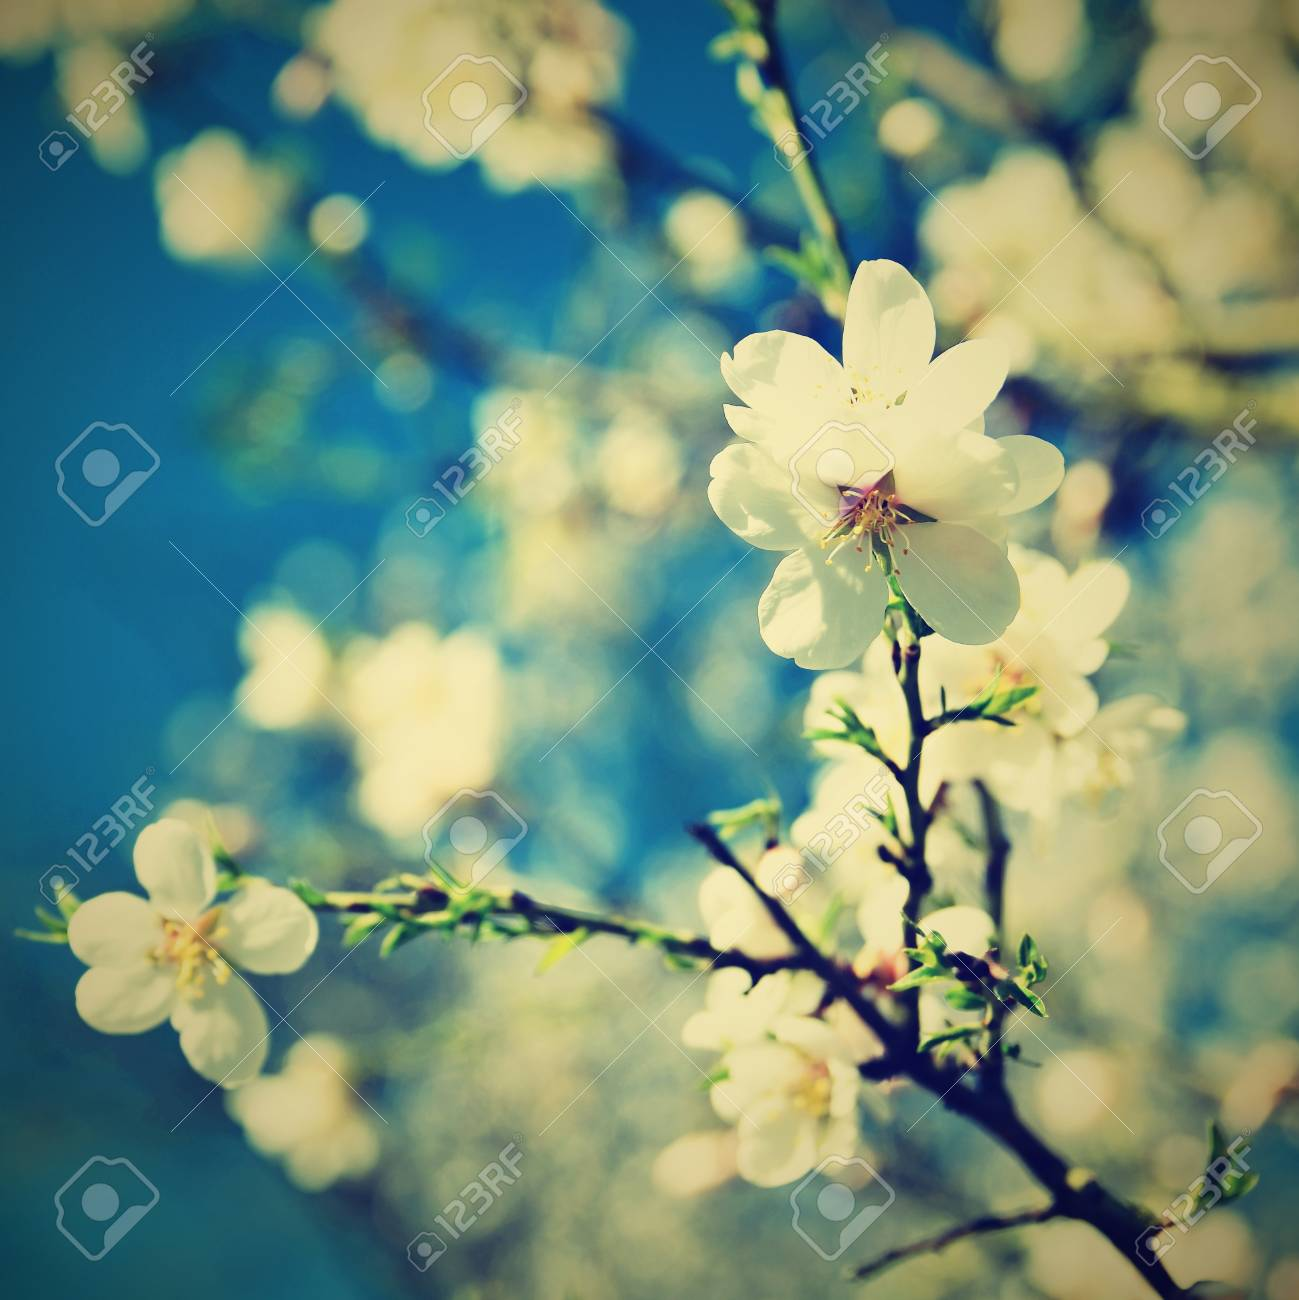 Spring Blossom Background Beautiful Nature Scene With Blooming